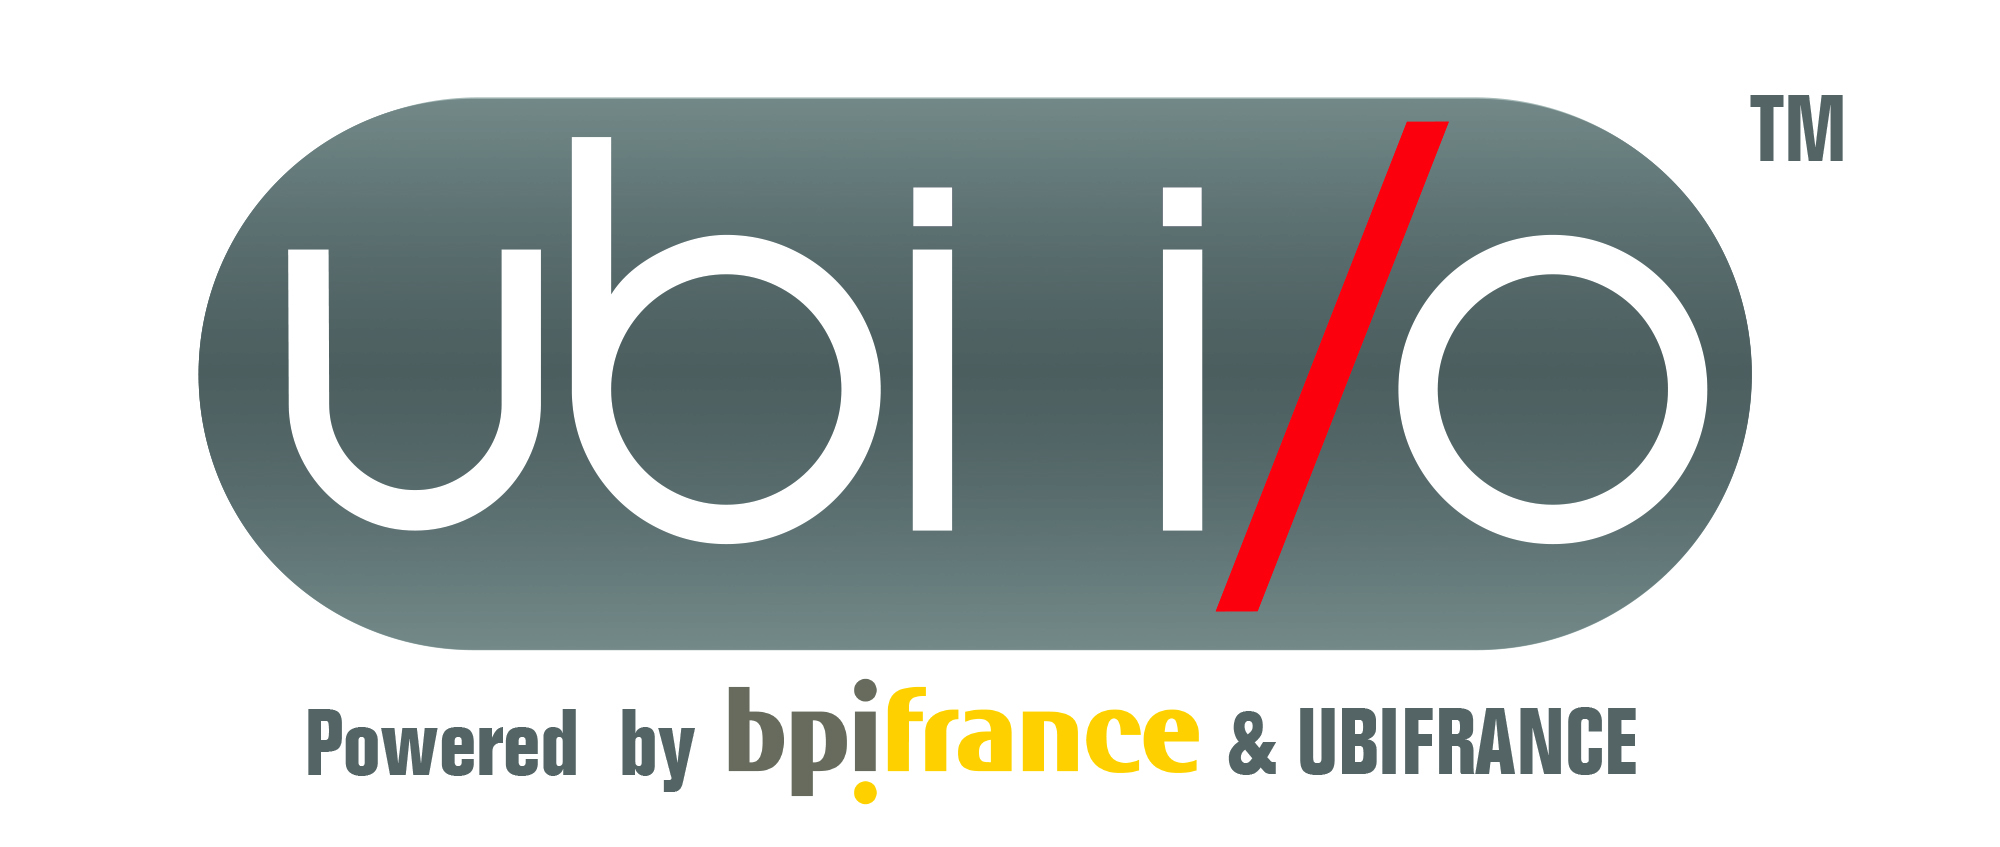 "ub/io ubi i/o is the Silicon Valley accelerator program launched by UBIFRANCE and Bpifrance and dedicated to highly promising French tech companies having a well-defined and achievable U.S. project. ubi i/o is an evolution of UBIFRANCE's annual French Tech Tour, 7 years in existence. The 8 participants will use ubi i/o's 10 week acceleration program to kickstart their business in the US, and introduce their outstanding technologies to the American market. ubi i/o is a part of the ""French Tech"" initiative launched this year by the French government. http://ubi-io.com/"